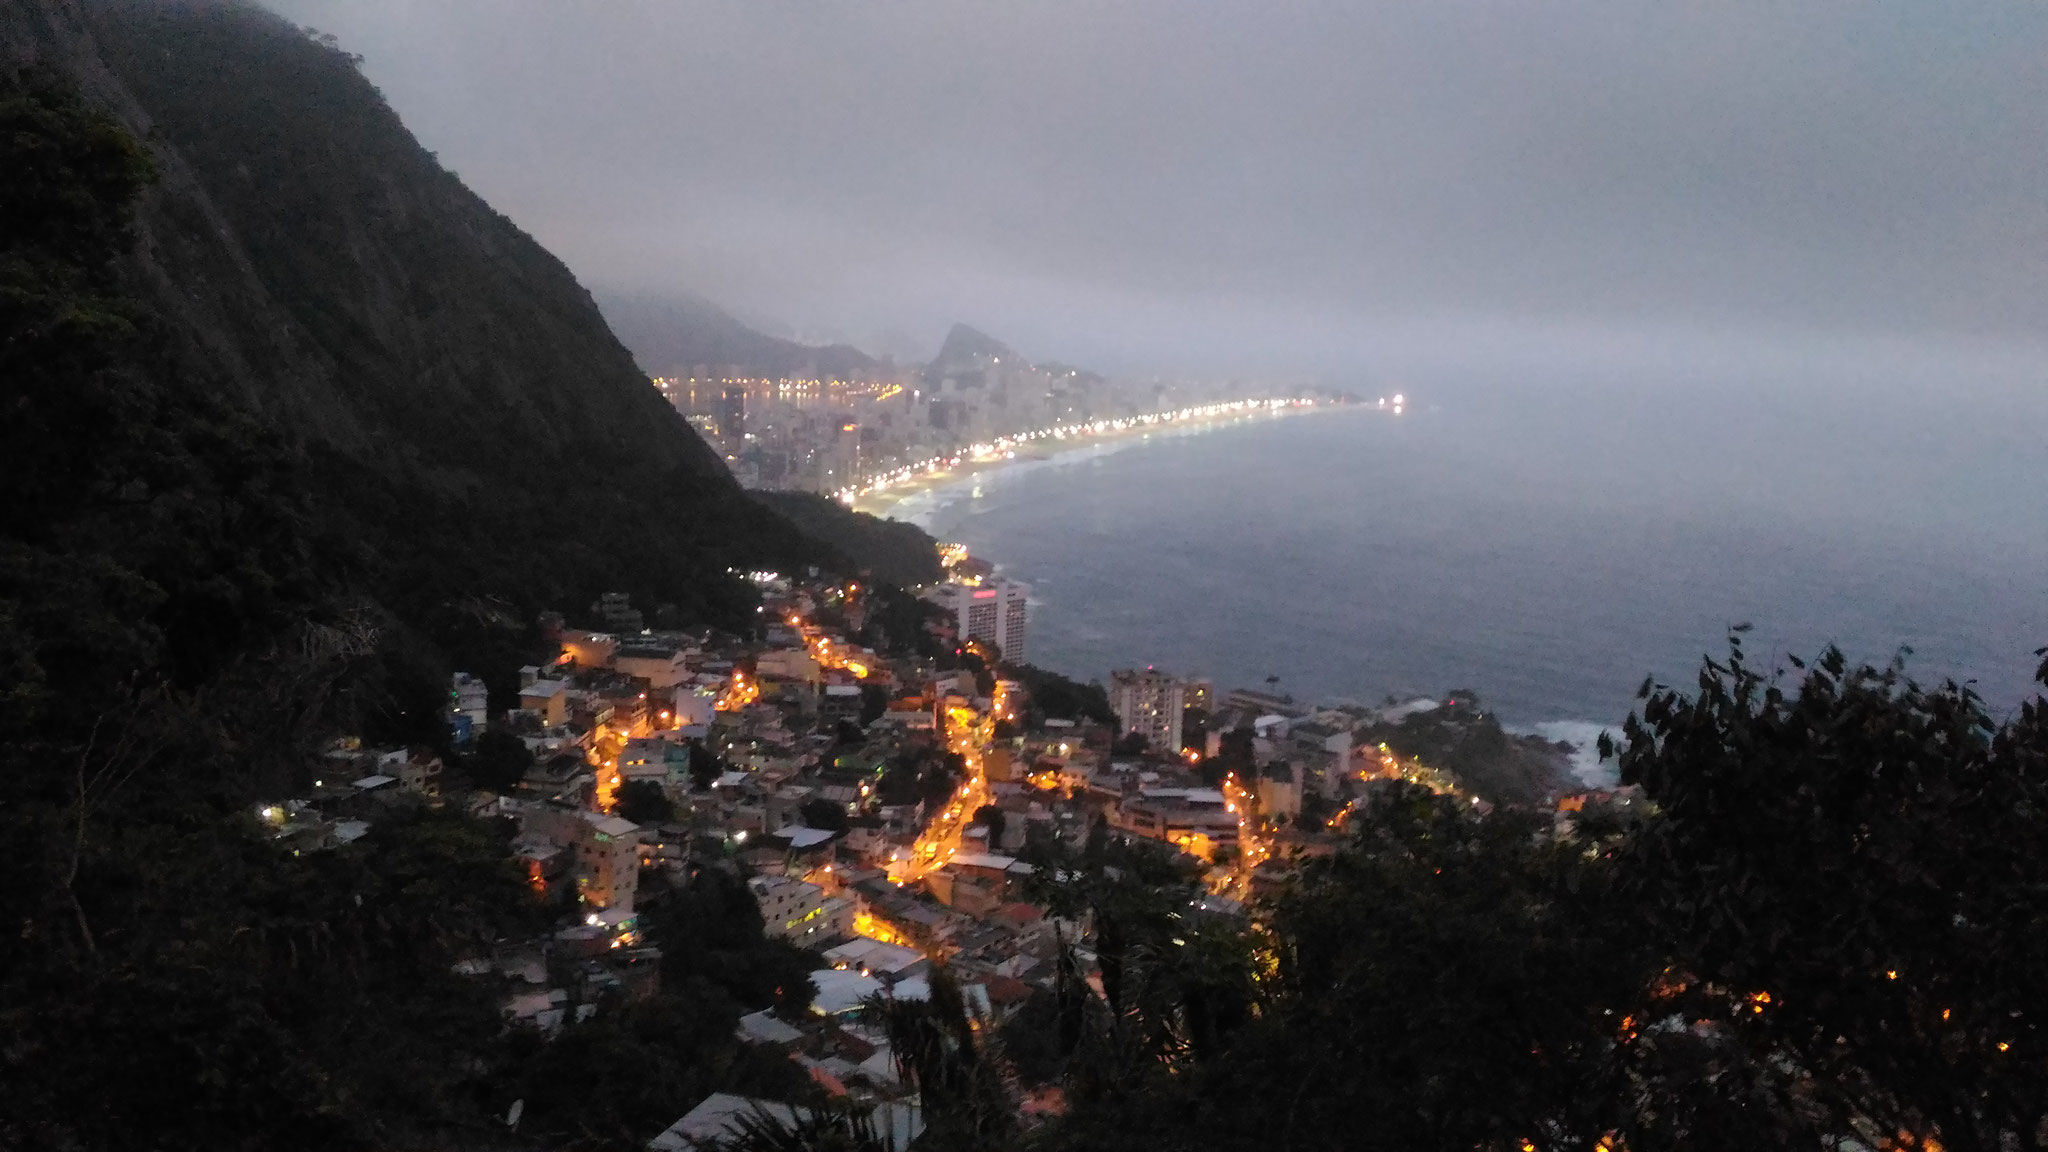 going down the favela at night